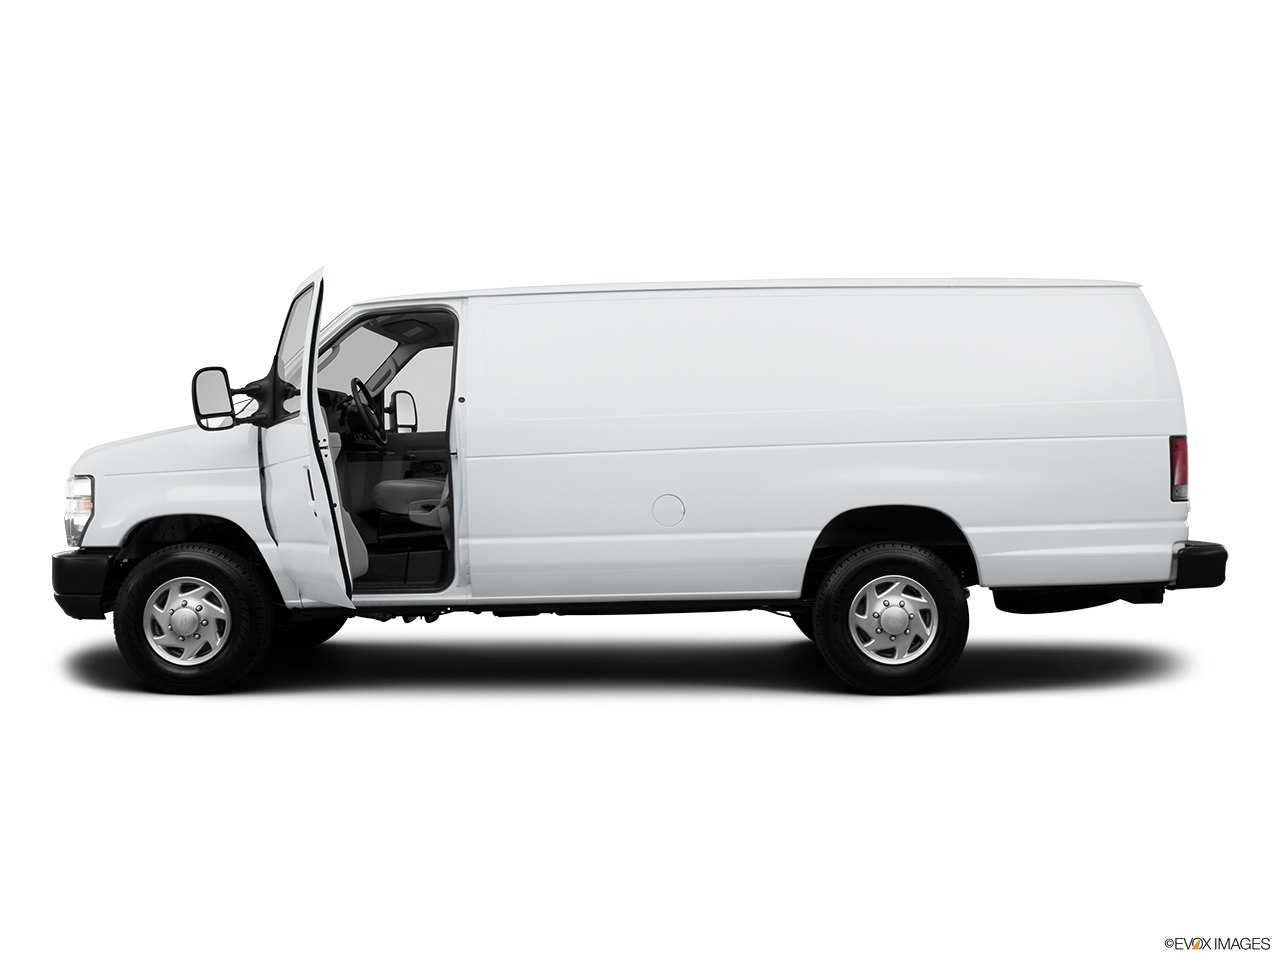 Ford Super Duty Pictures - 2014 Ford Econoline Cargo Van E-350 Super Duty Ext ...